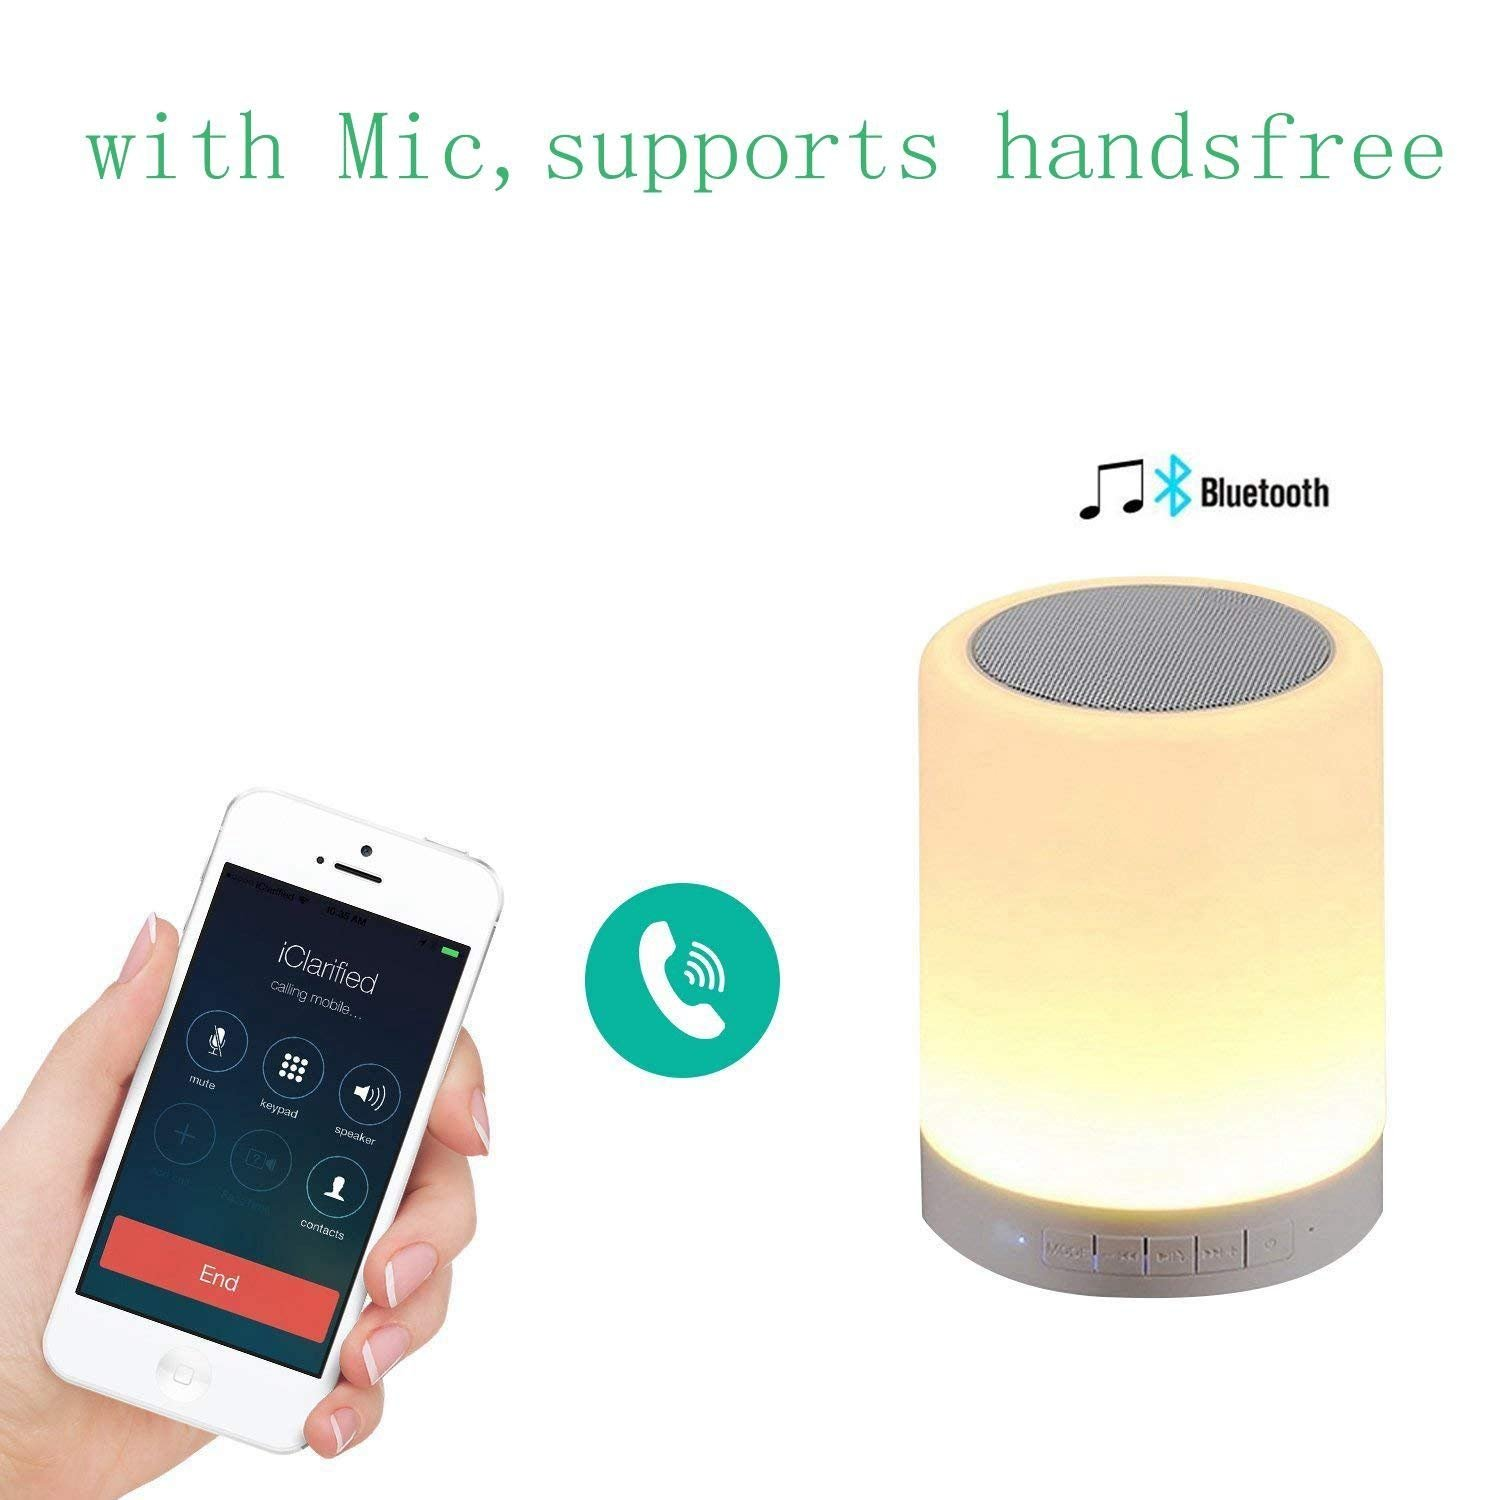 Night Light Bluetooth 4.2 Speakers, PRODELI Wireless Music Player Touch Control Color Changing Beside Table Lamp Support AUX, TF Card with Mic Handsfree【Multi-connection】【Left/Right/Stereo Channel】